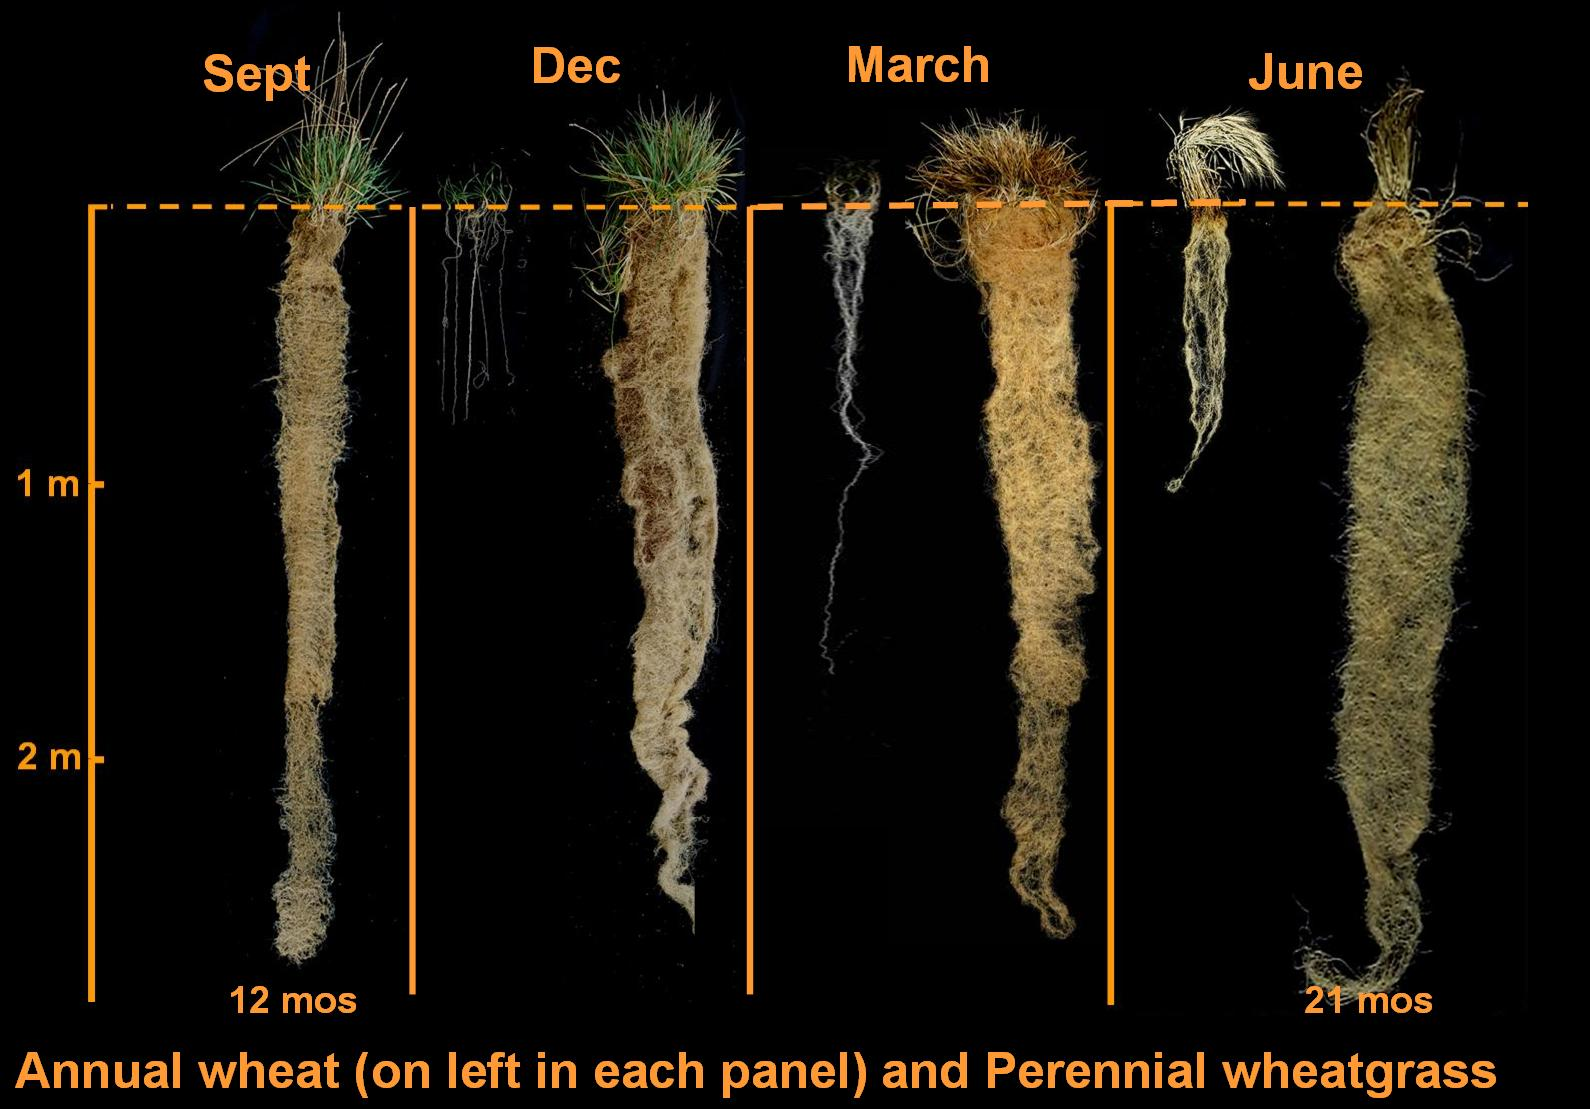 Root growth of intermediate wheat grass compared to annual wheat.